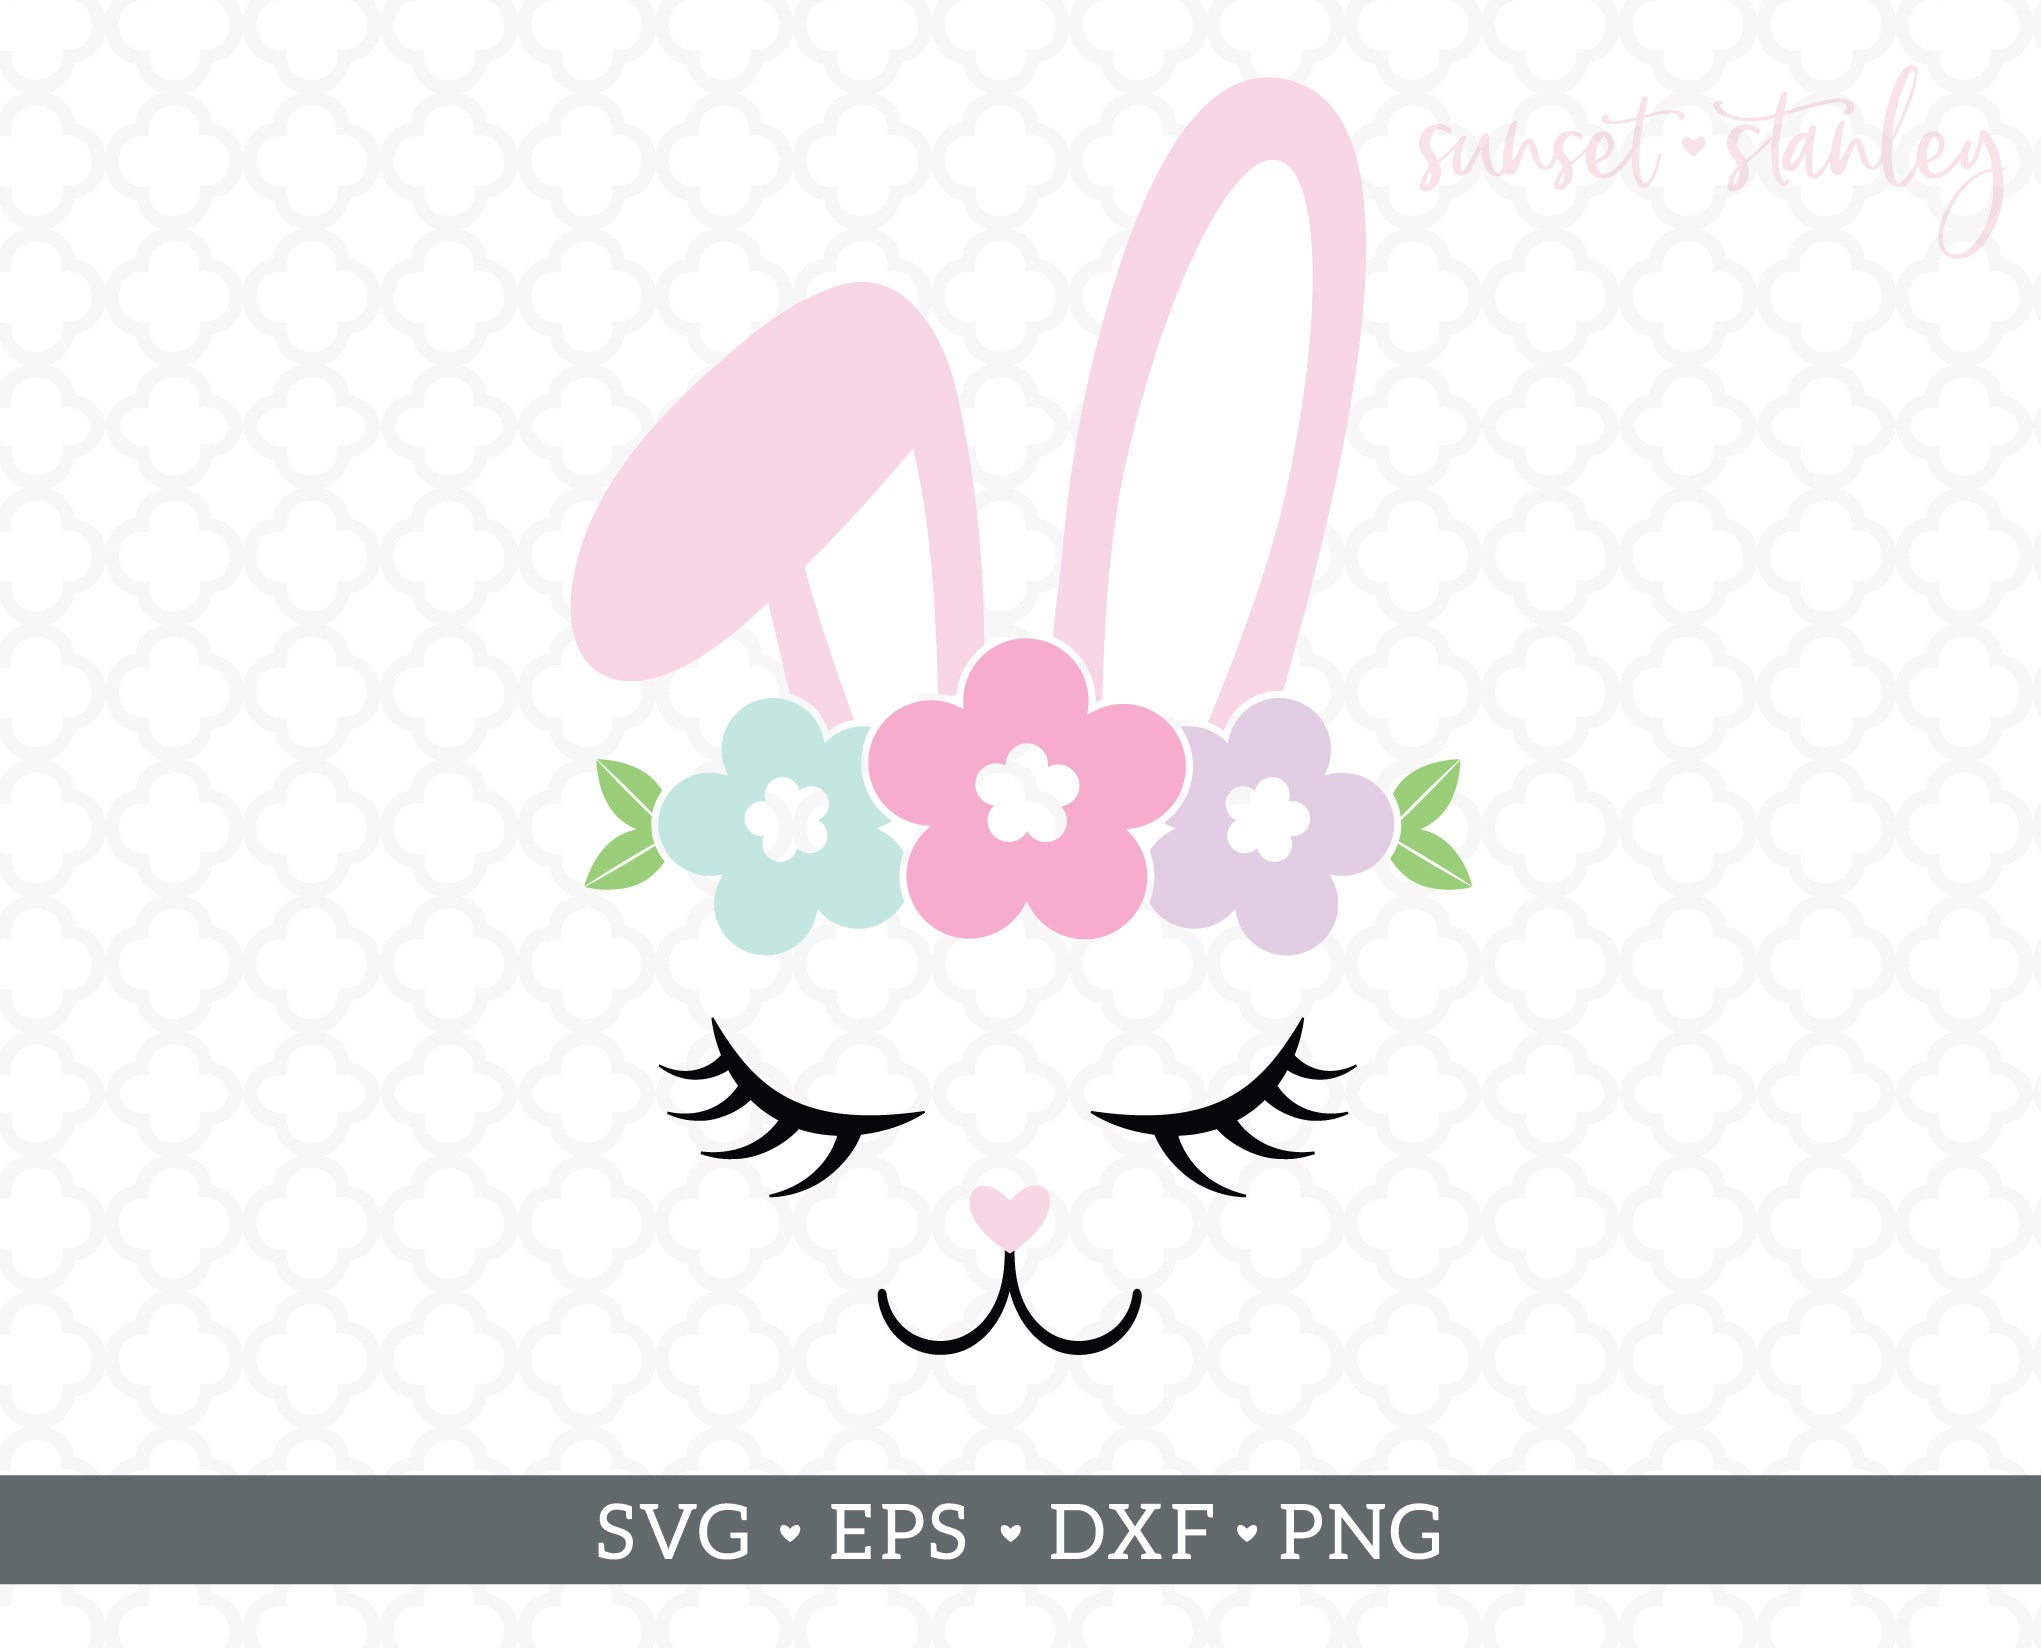 Bunny Face With Flowers Svg File Easter Cutting File Svg Eps Dxf Tweet Heart Home Design